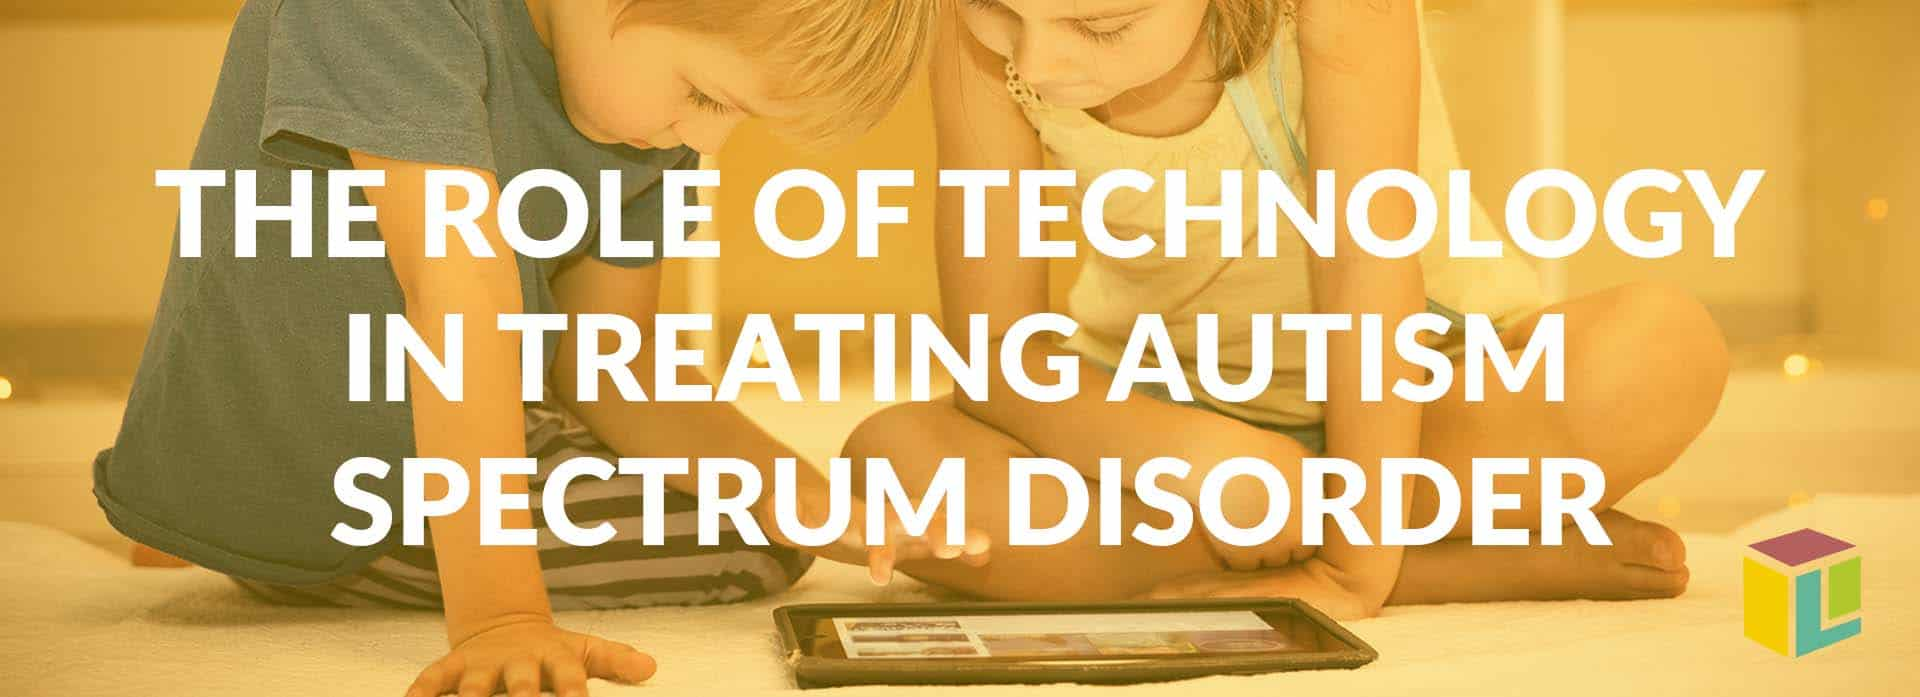 The Role Of Technology In Treating Autism